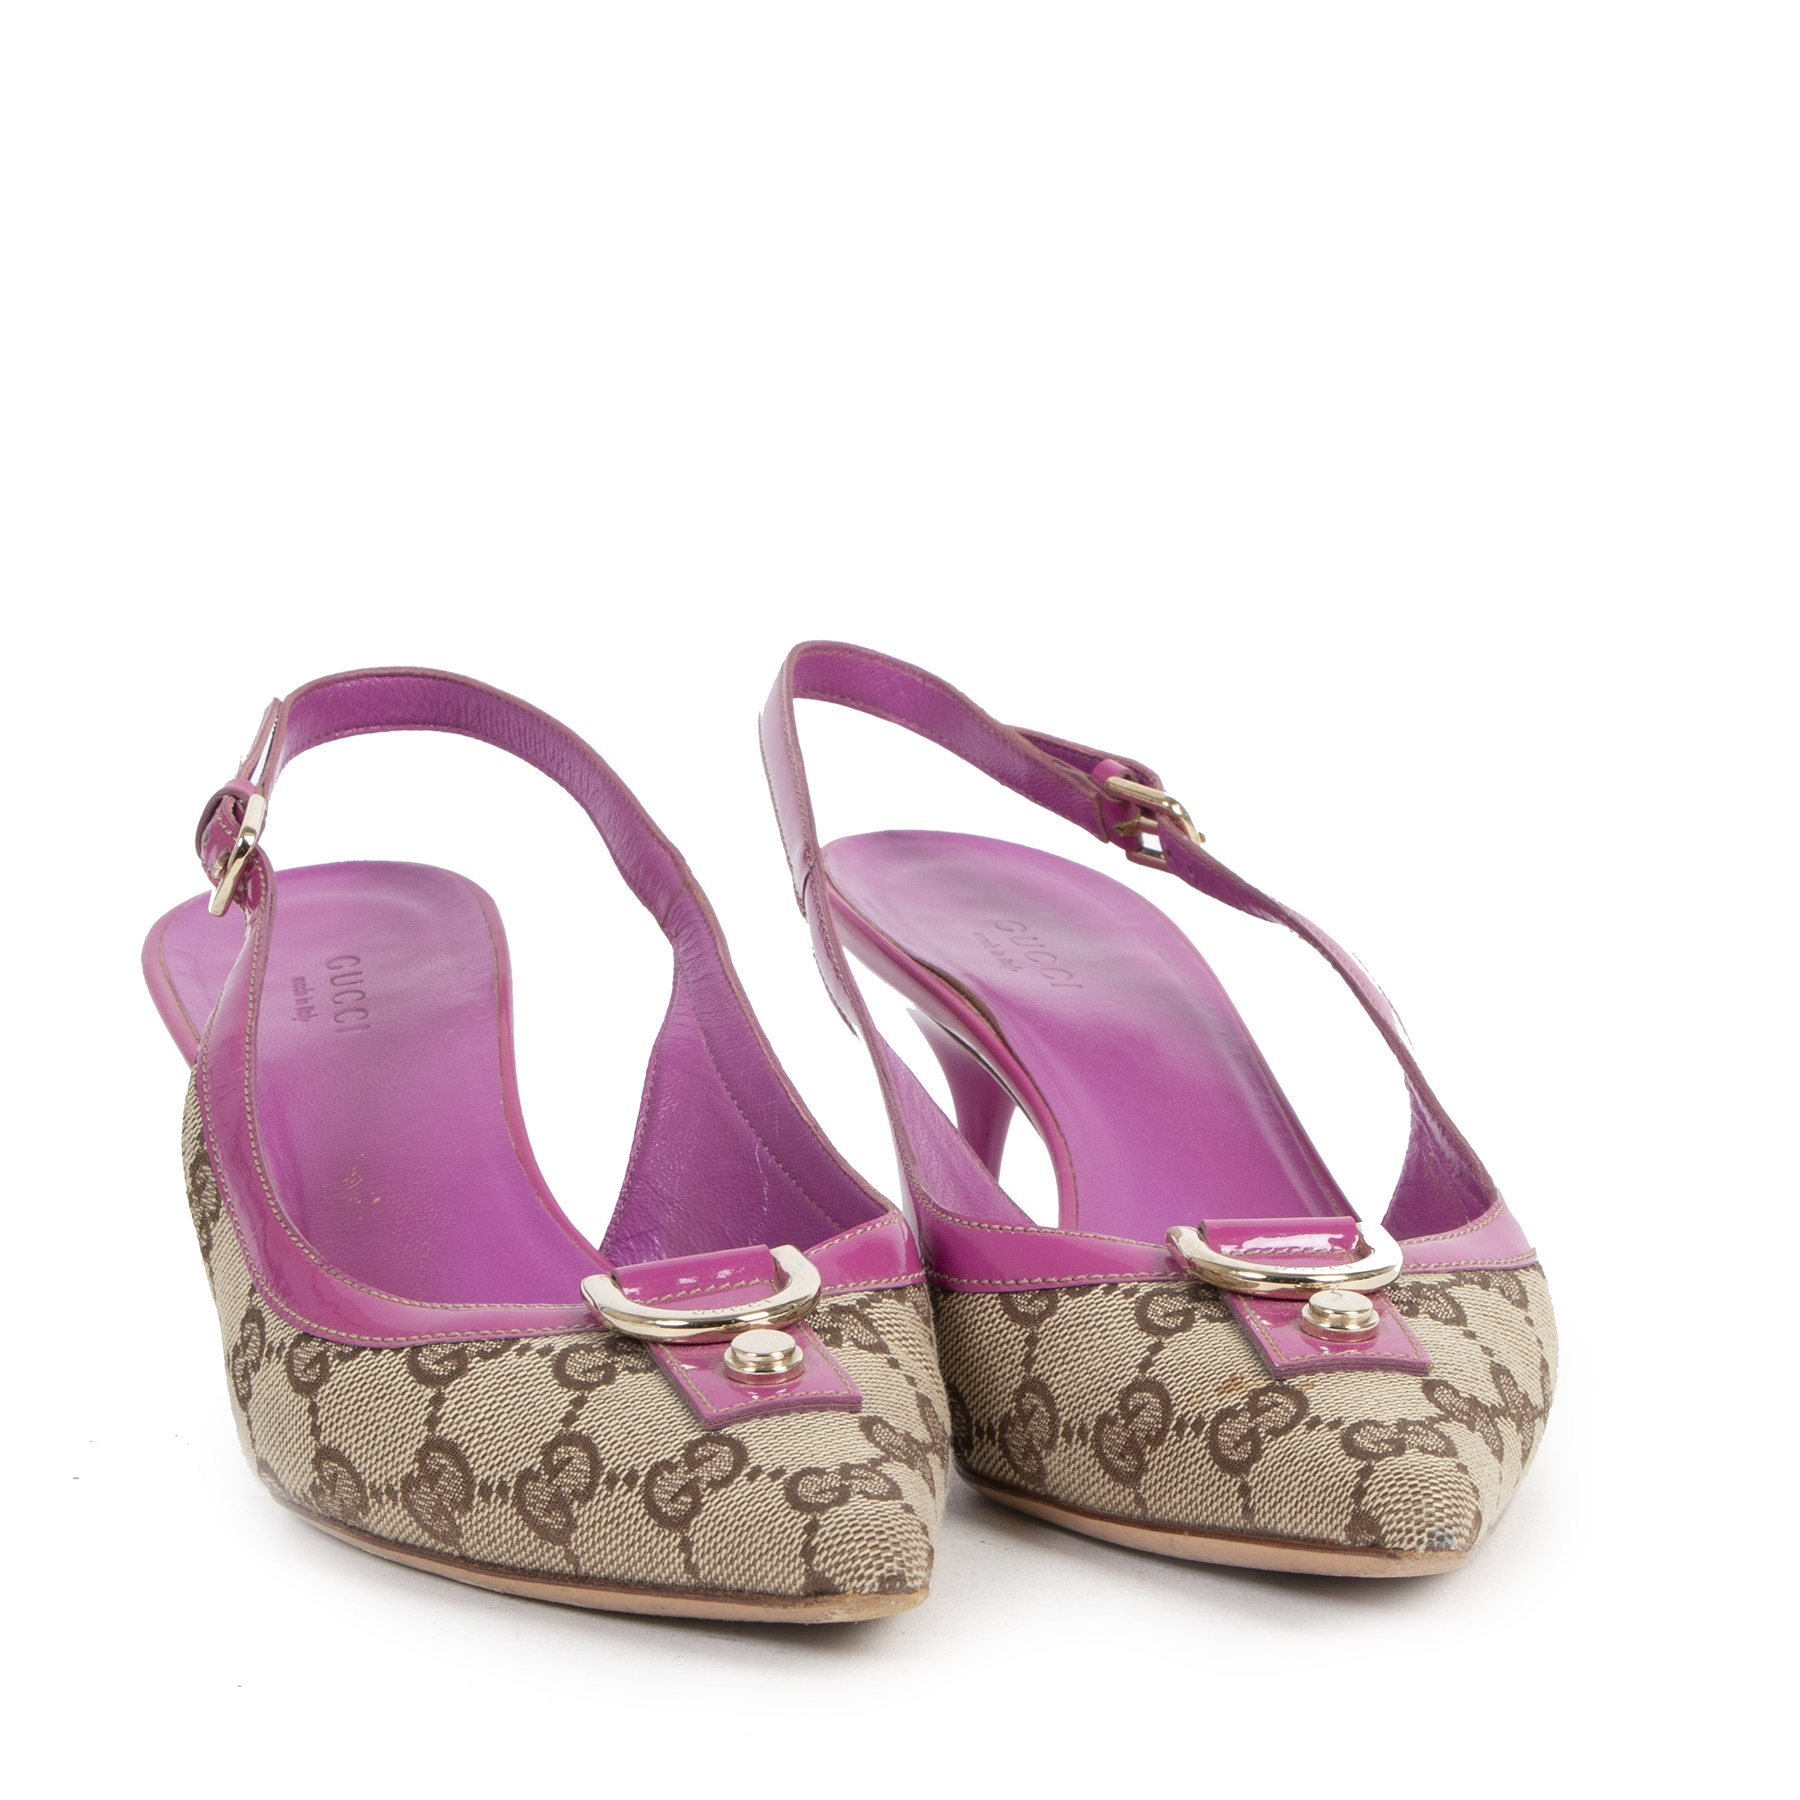 Authentic secondhand Gucci Monogram Pink Kitten Heels - Size 38 best price designer high heels shoes luxury vintage webshop fashion safe secure online shopping worldwide shipping